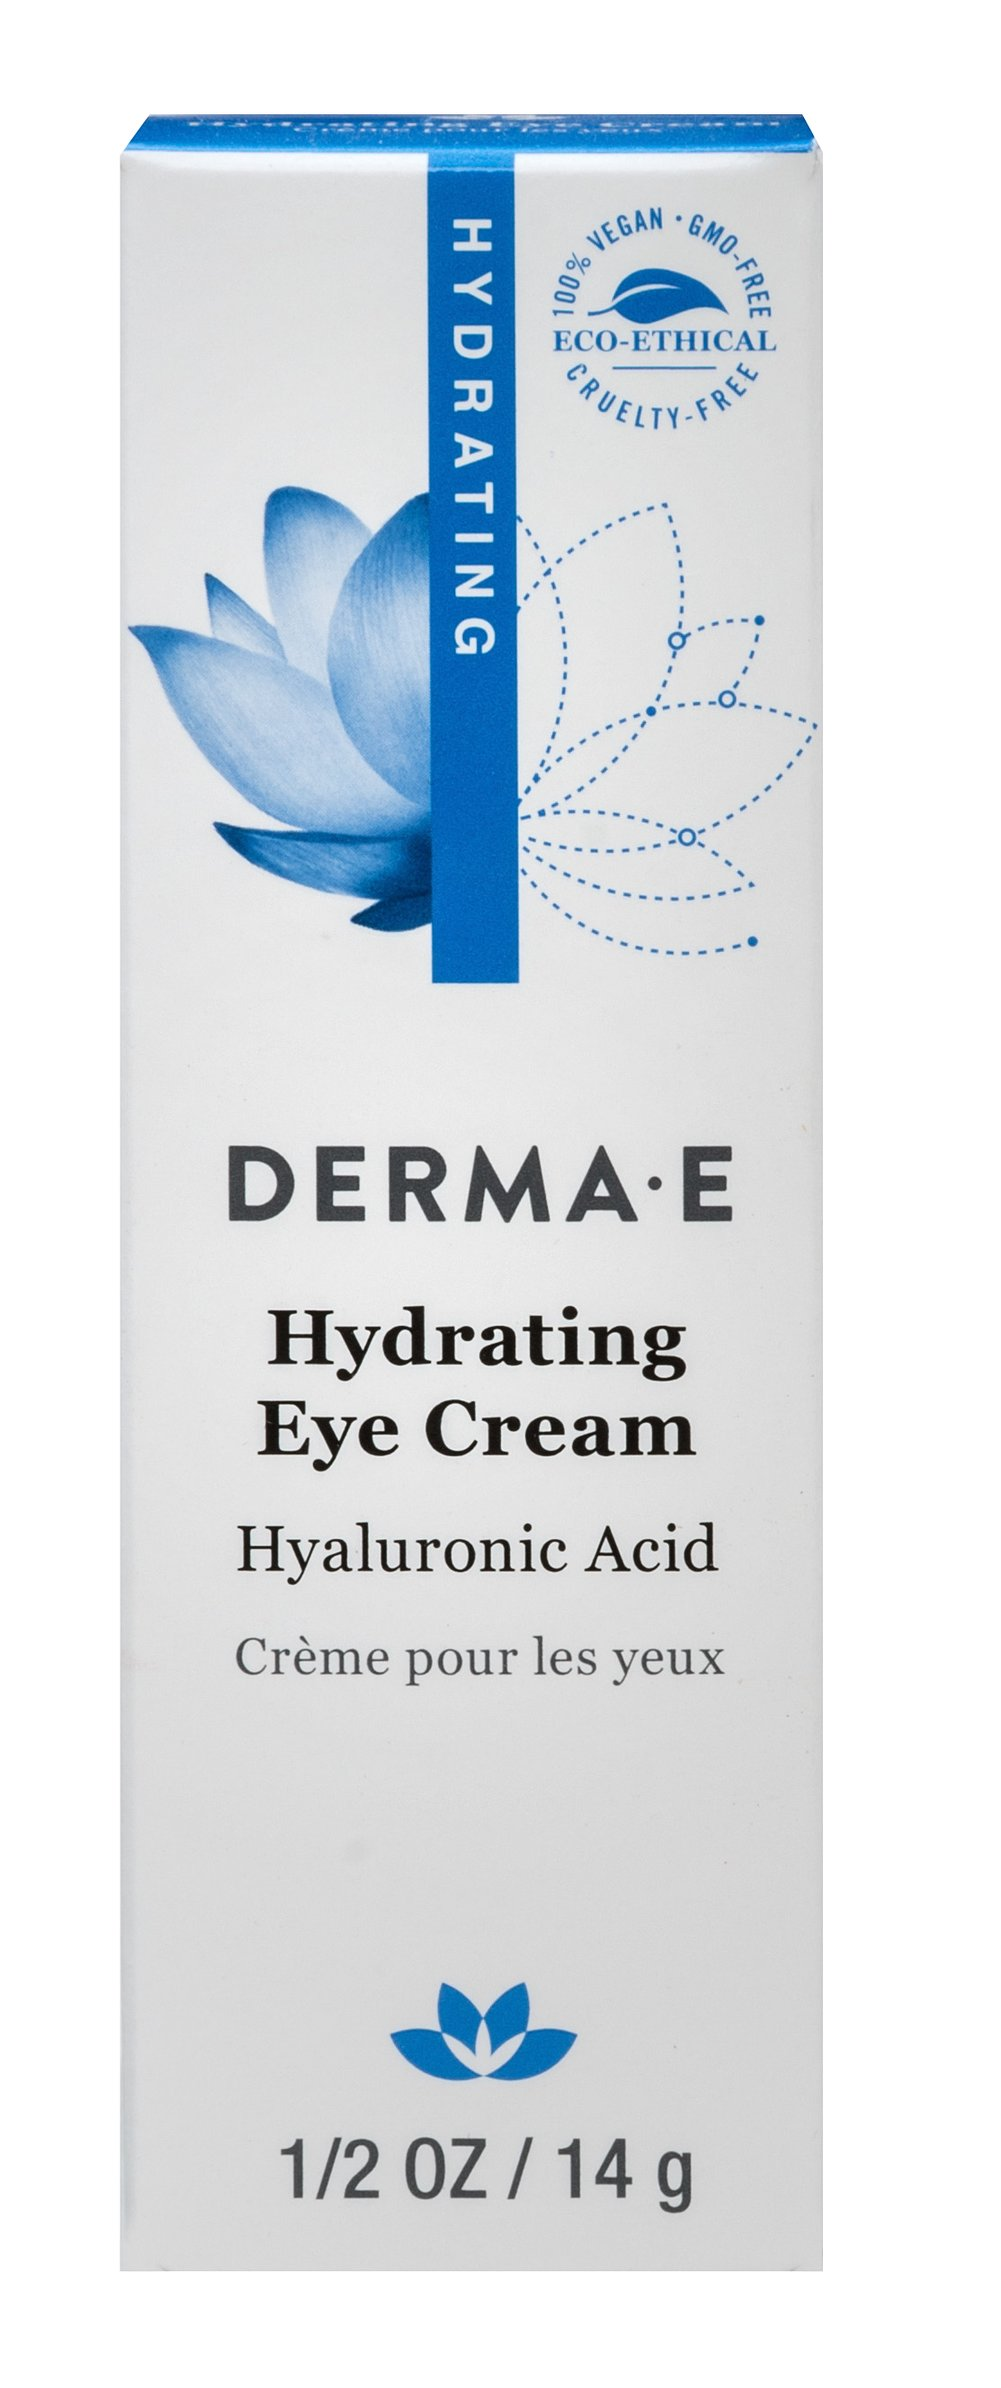 Derma E® Hyaluronic & Pycnogenol® Eye Crème  0.5 oz Cream  $15.99